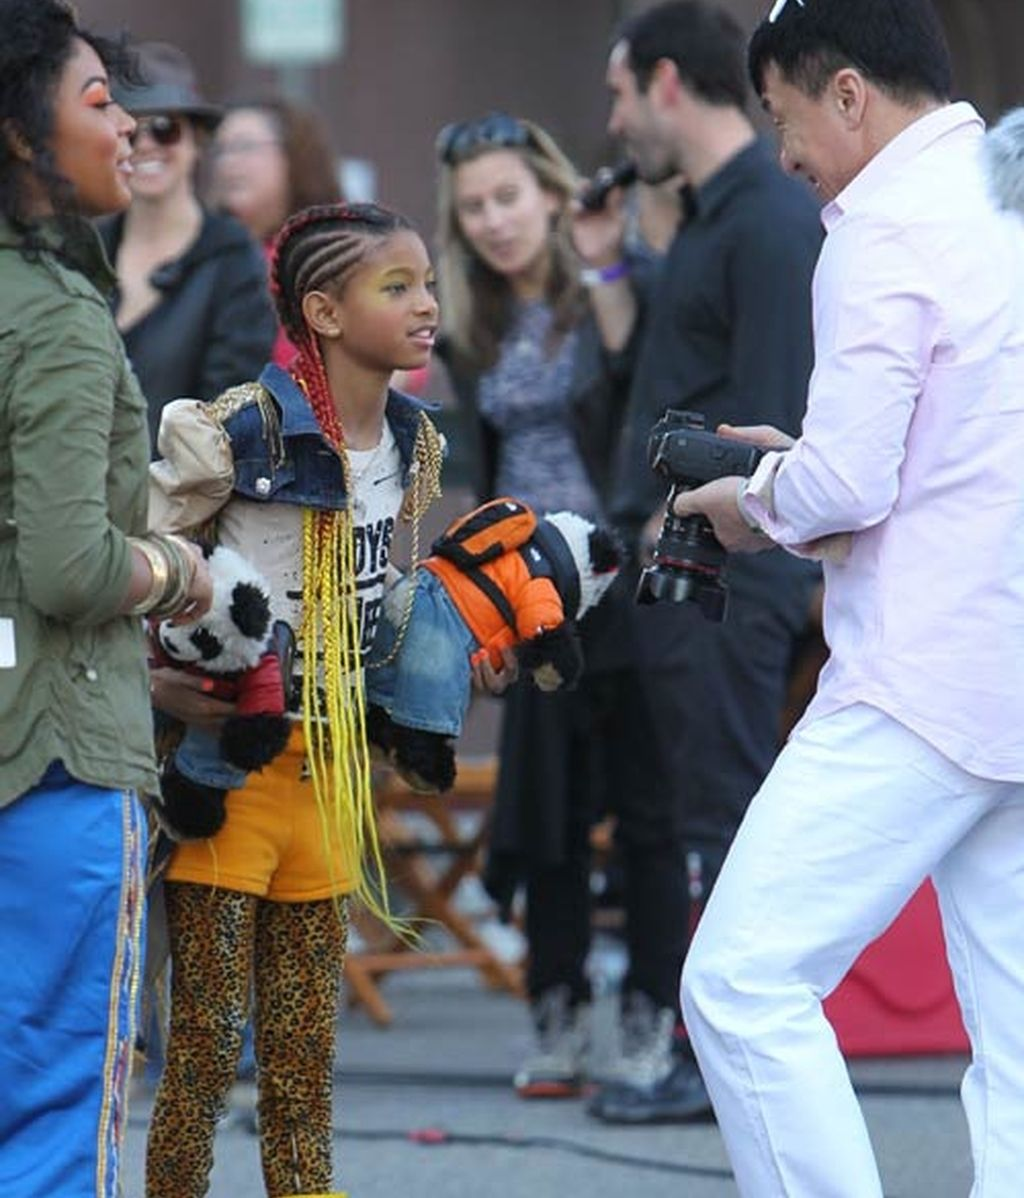 El estilismo imposible de Willow Smith en su último videoclip